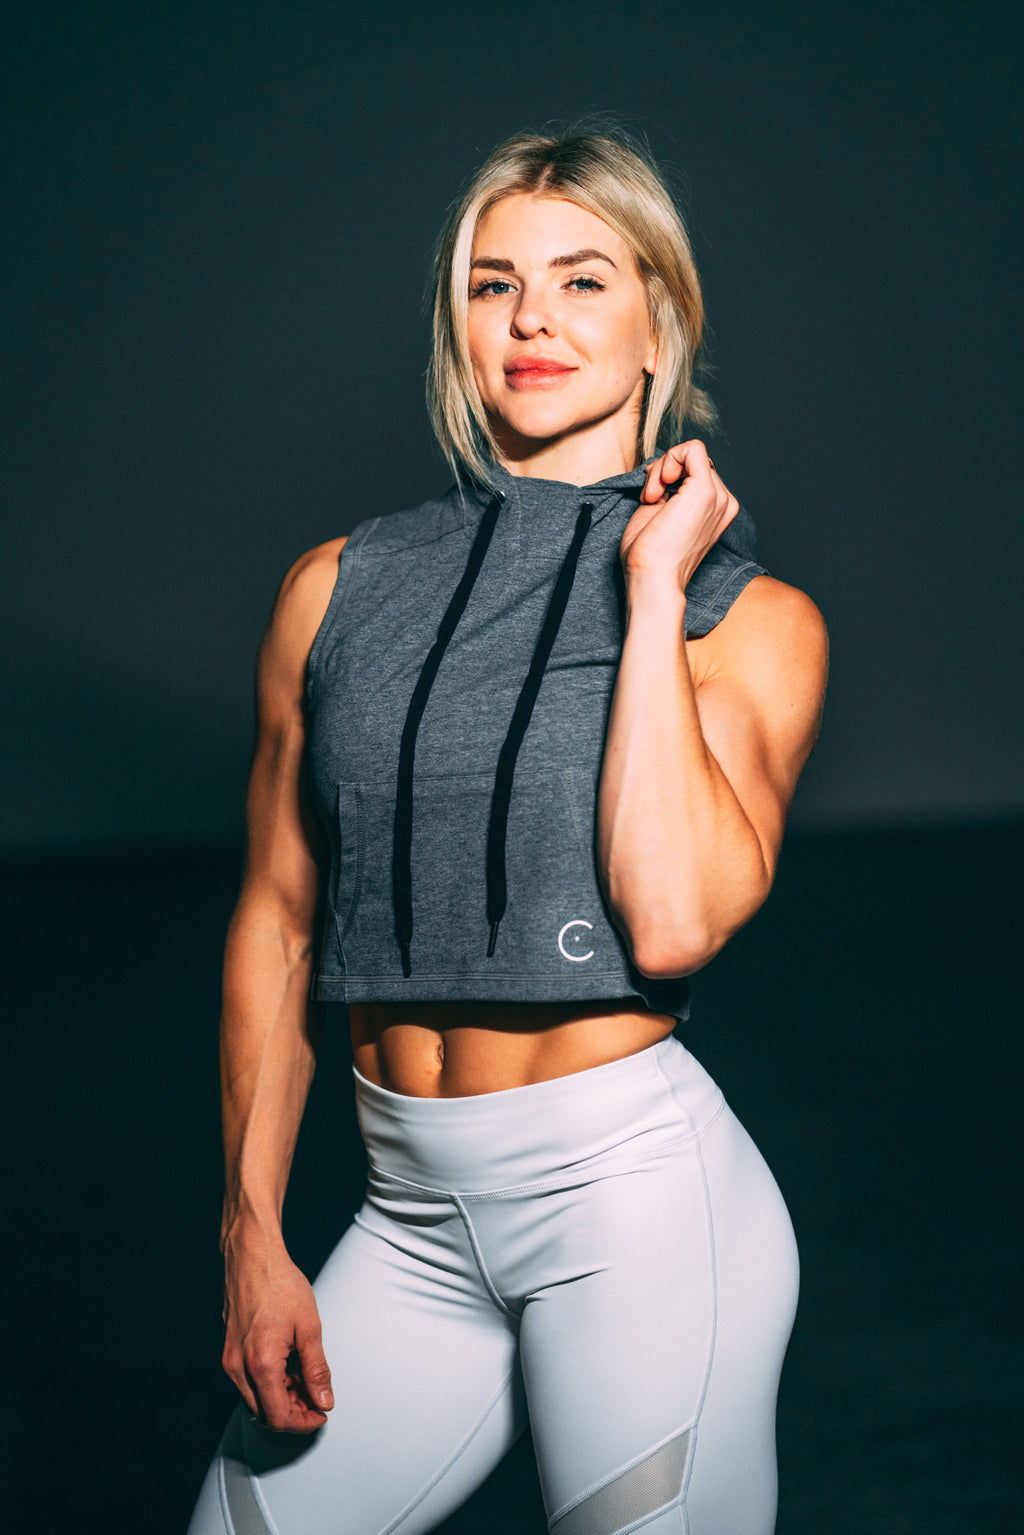 Ence Wear By Brooke Ence